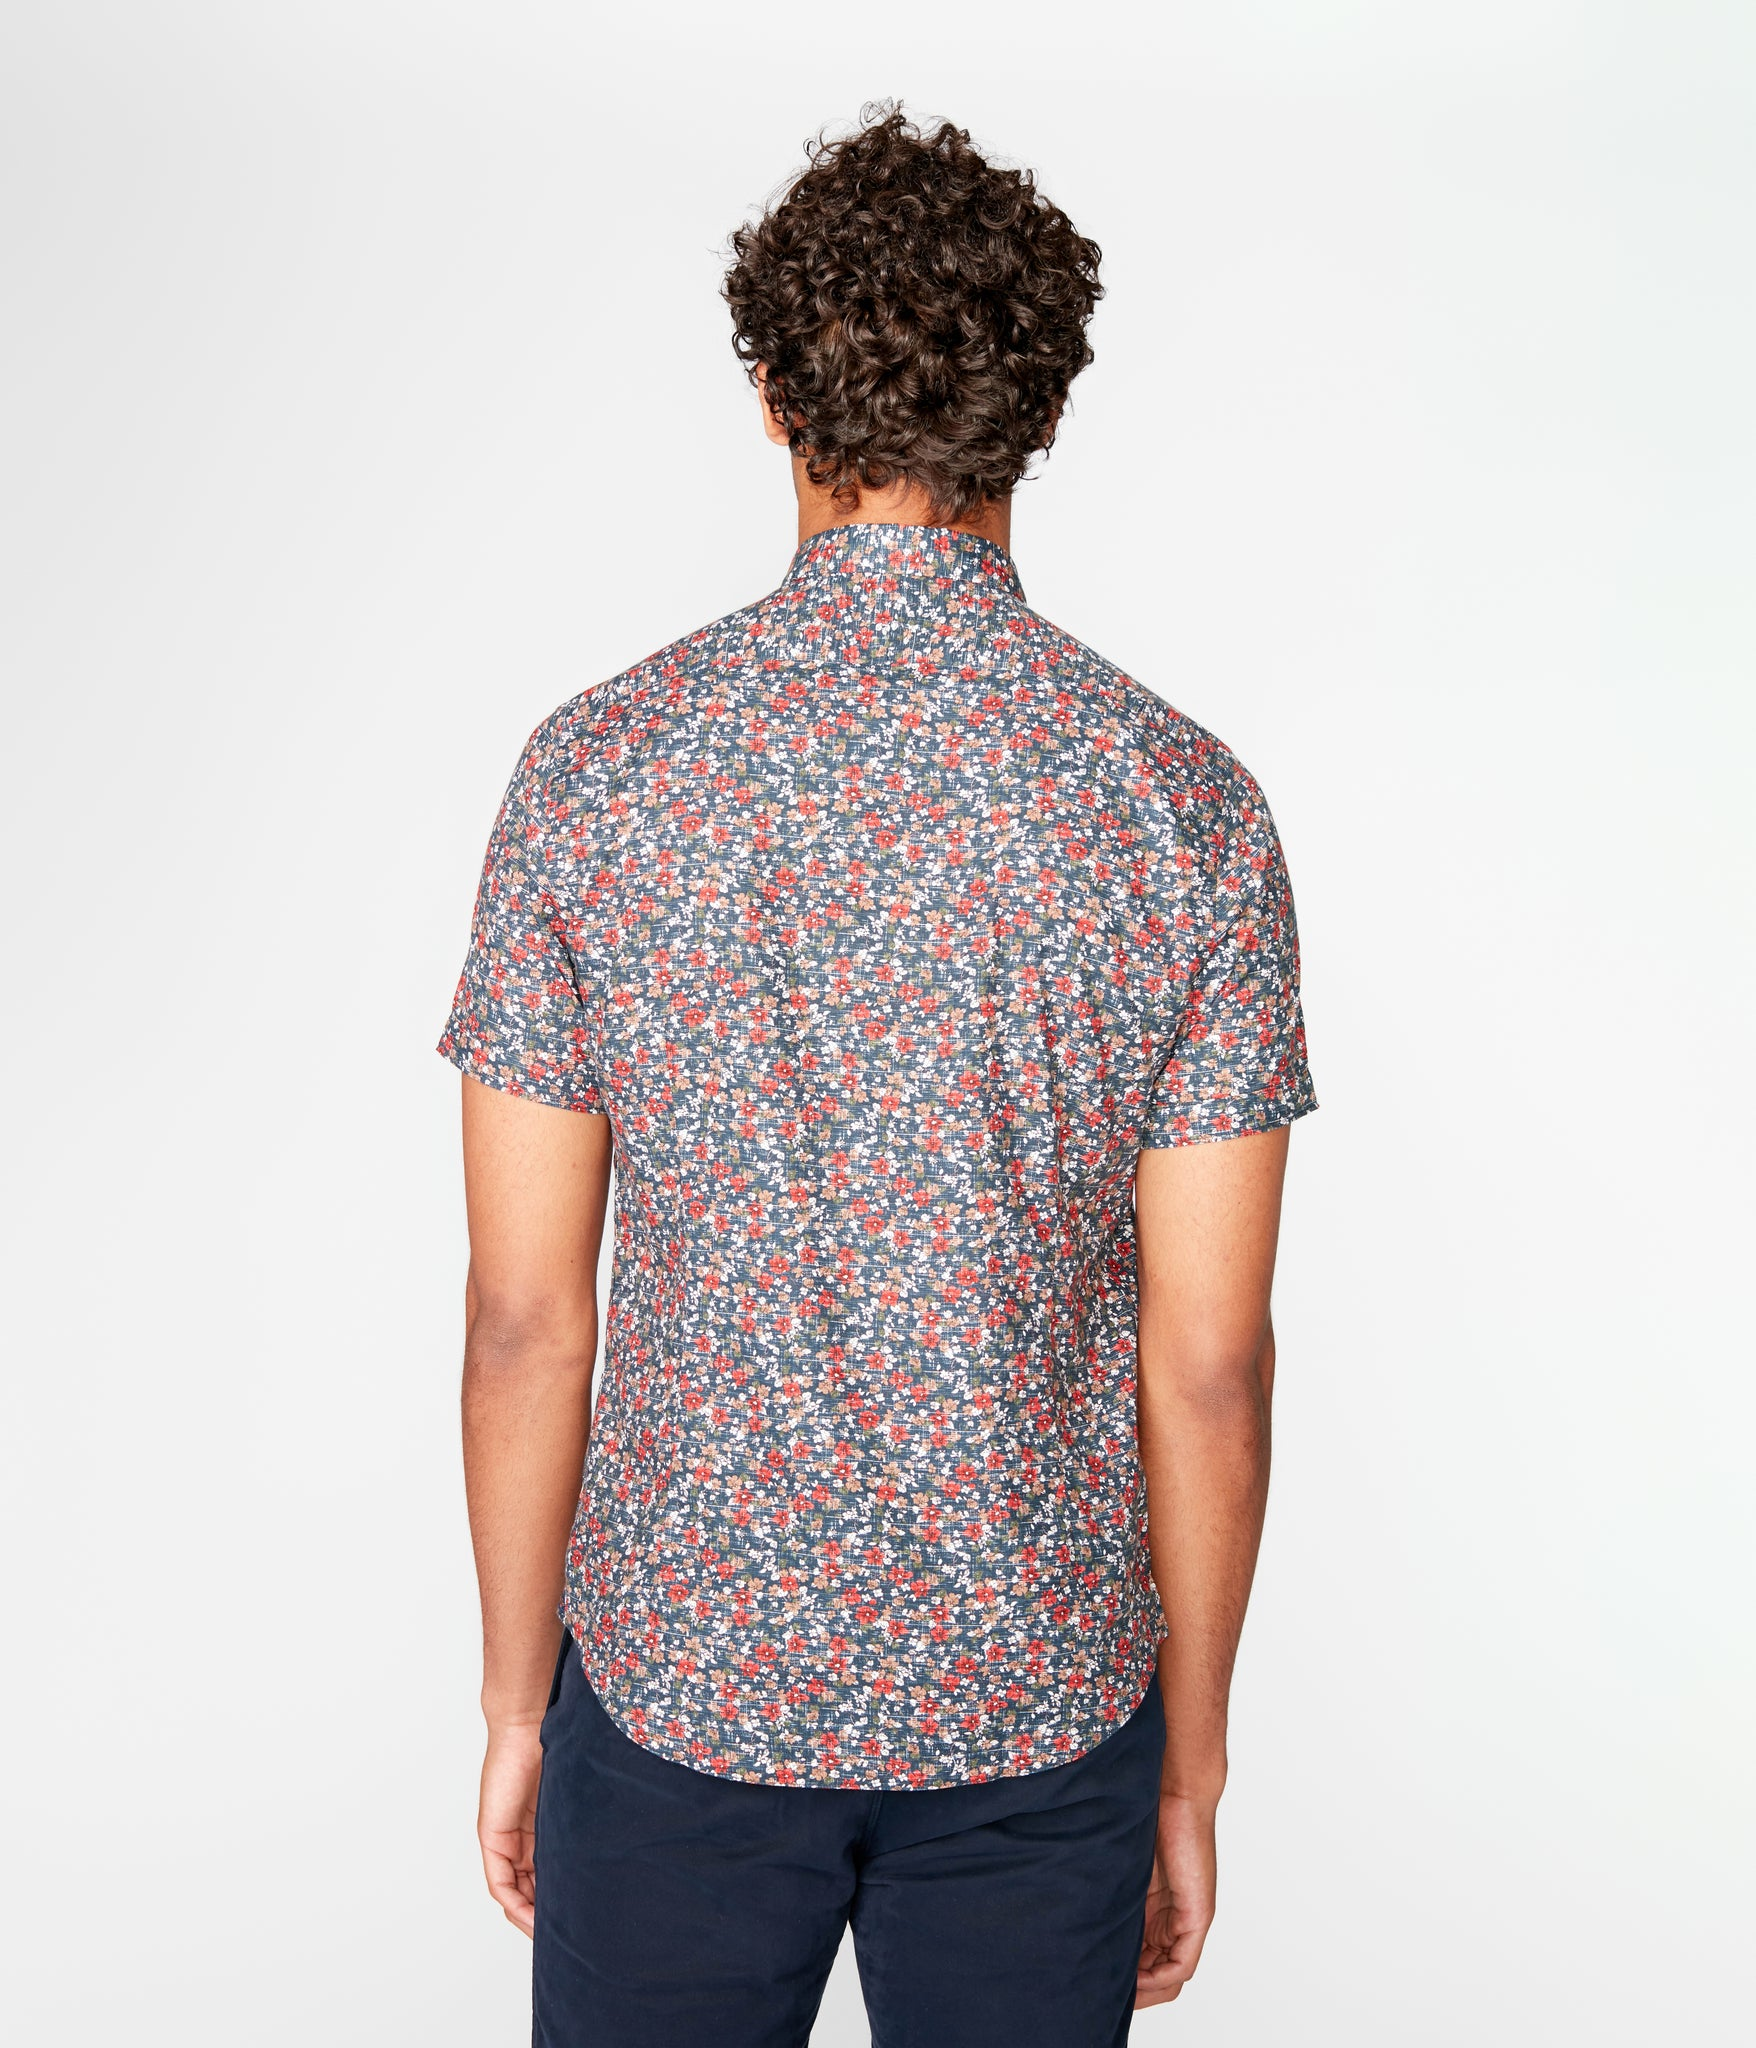 Woven On-Point Shirt - Navy Luxembourg Floral